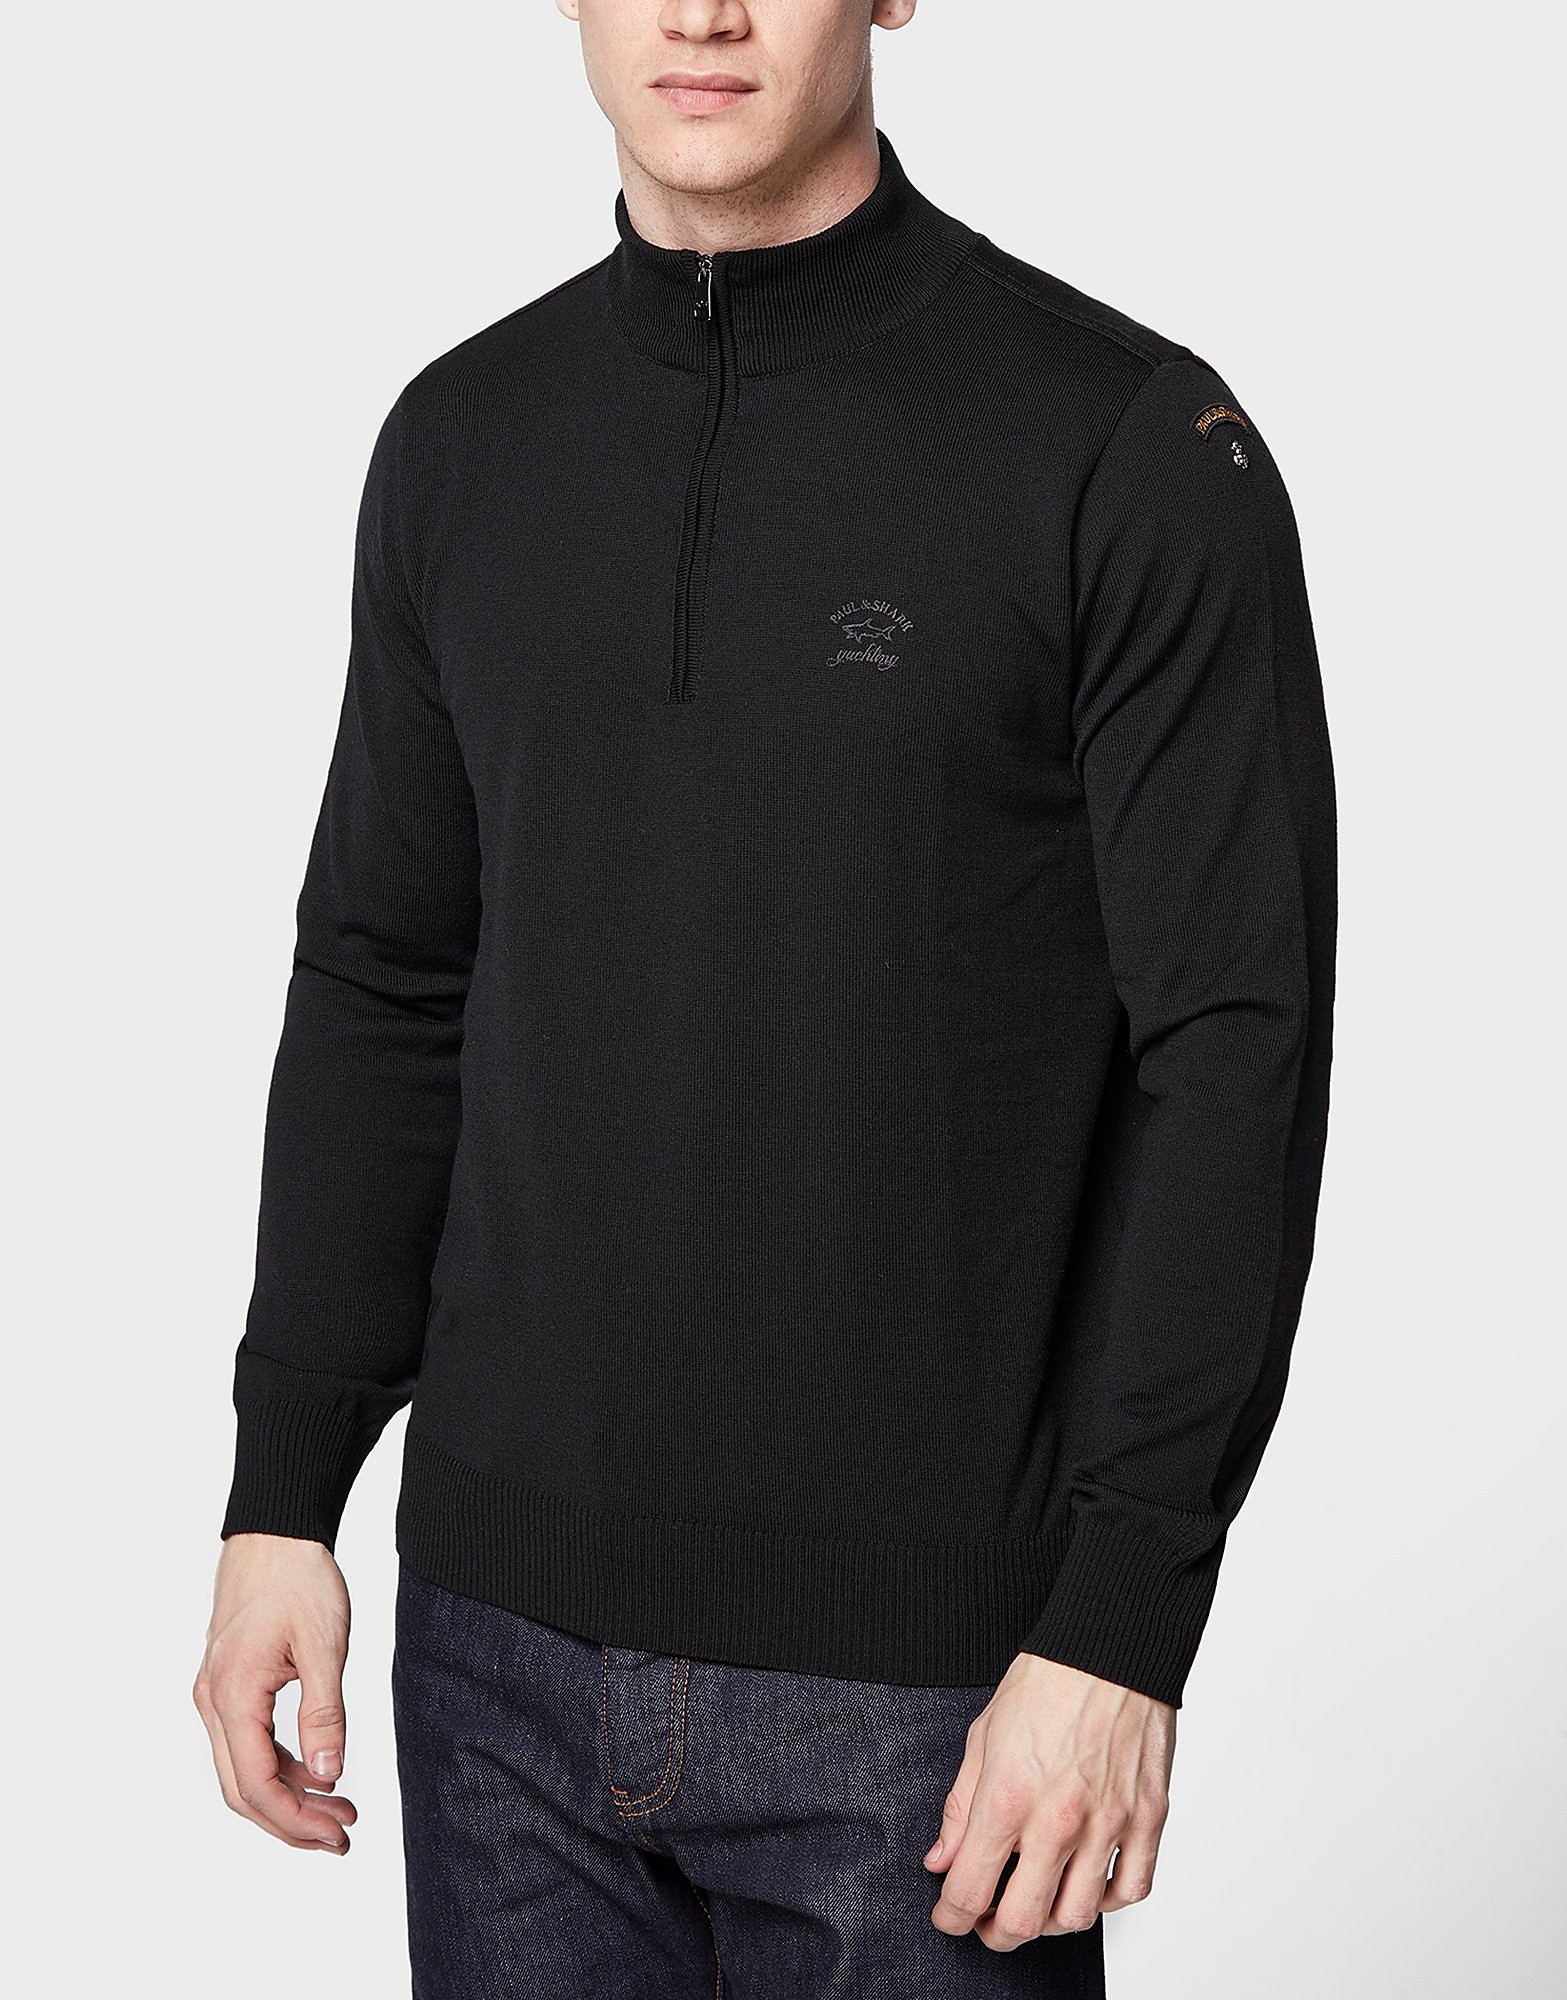 Paul and Shark Half-Zip Knit